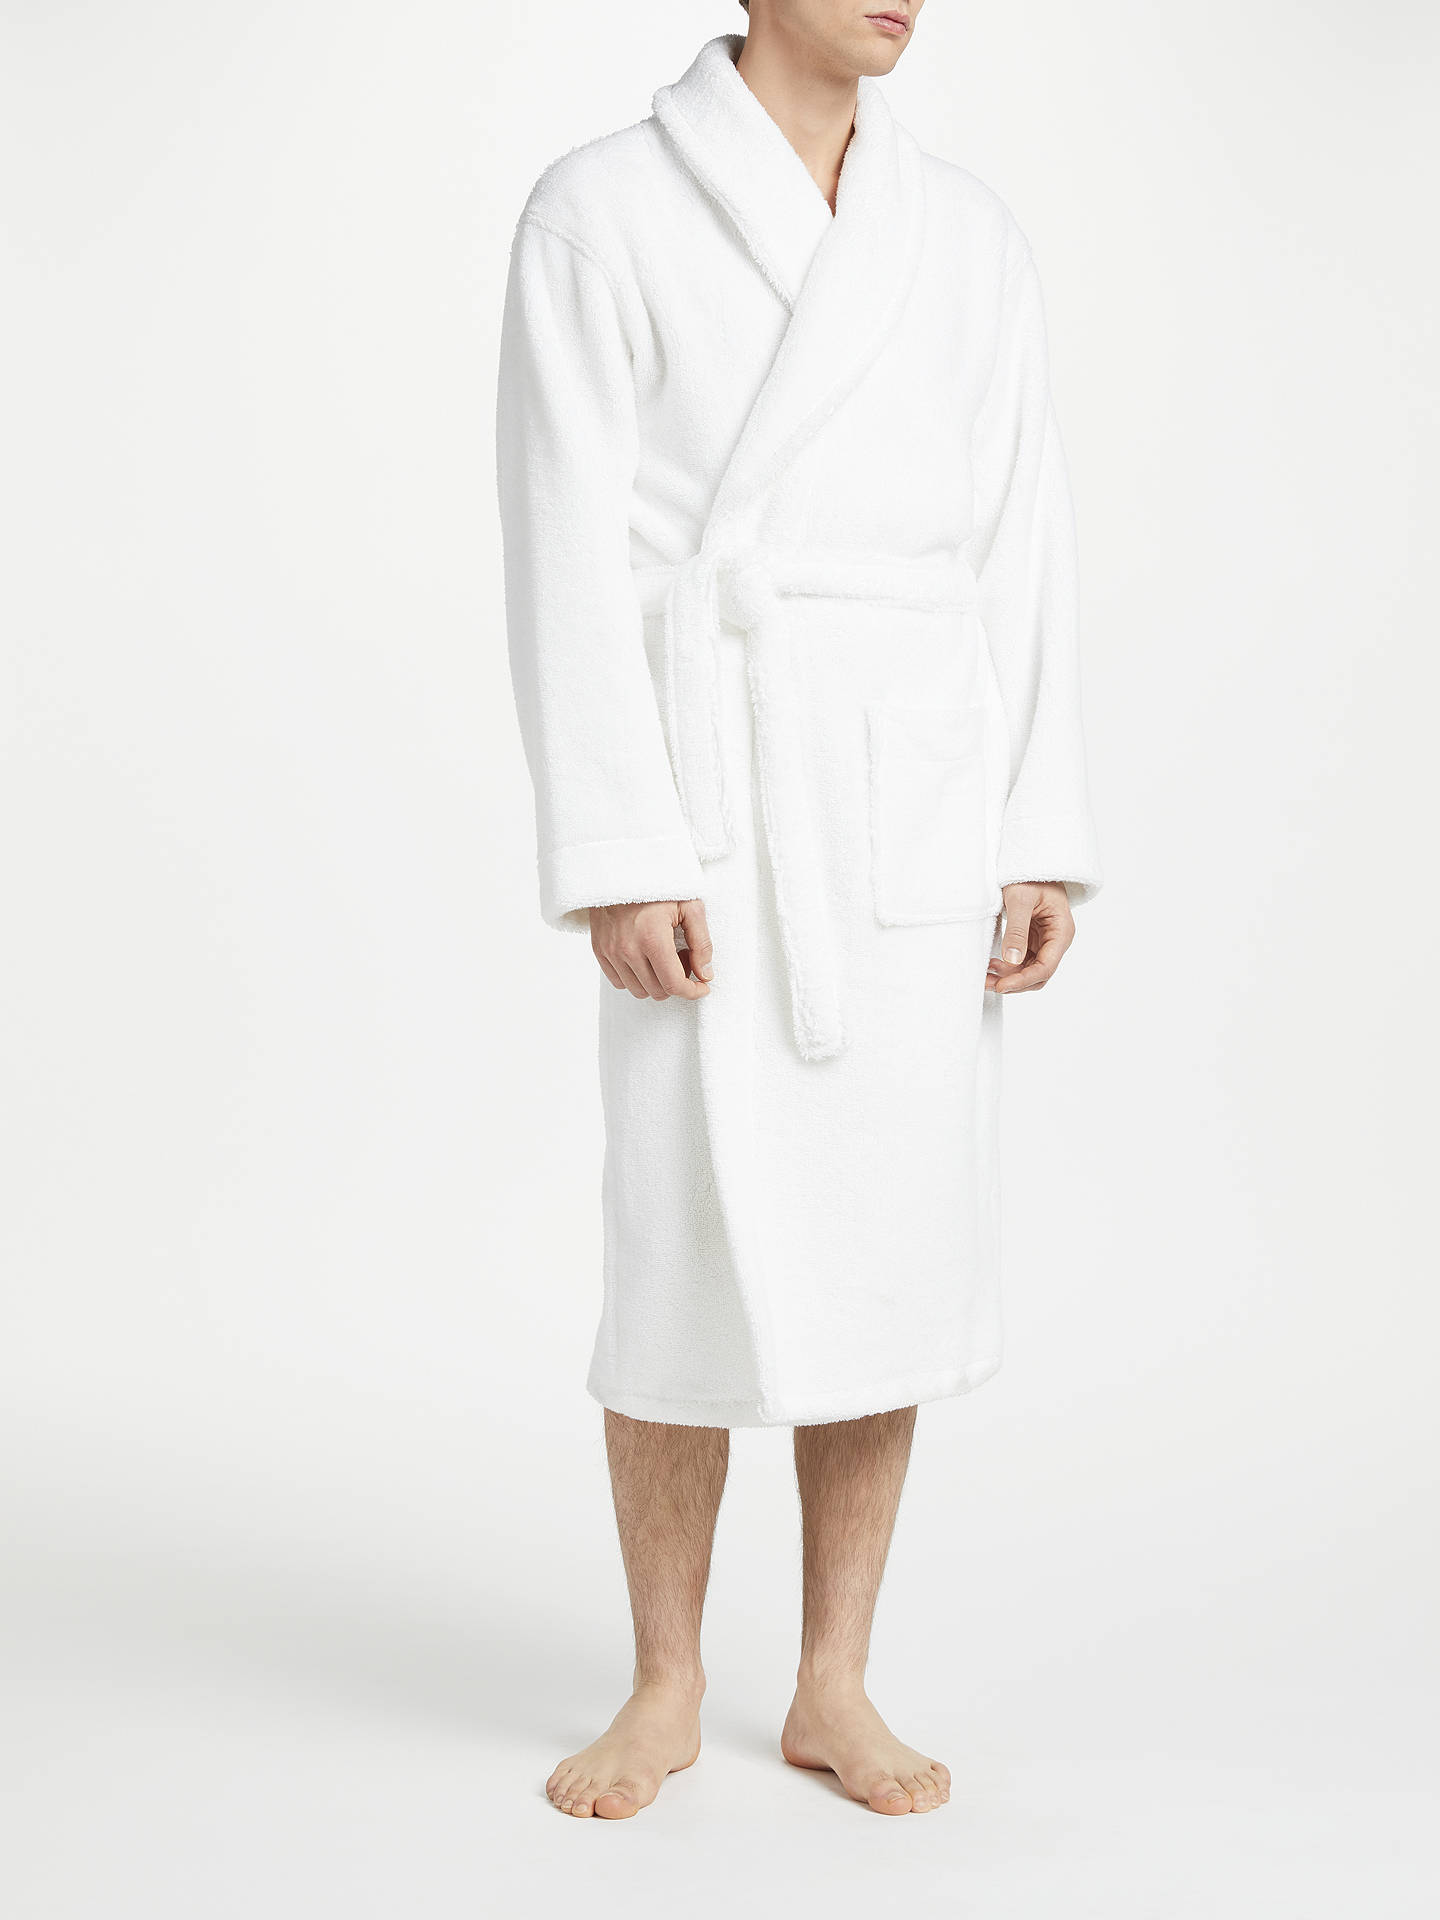 John Lewis & Partners Towelling Cotton Robe, White at John Lewis ...